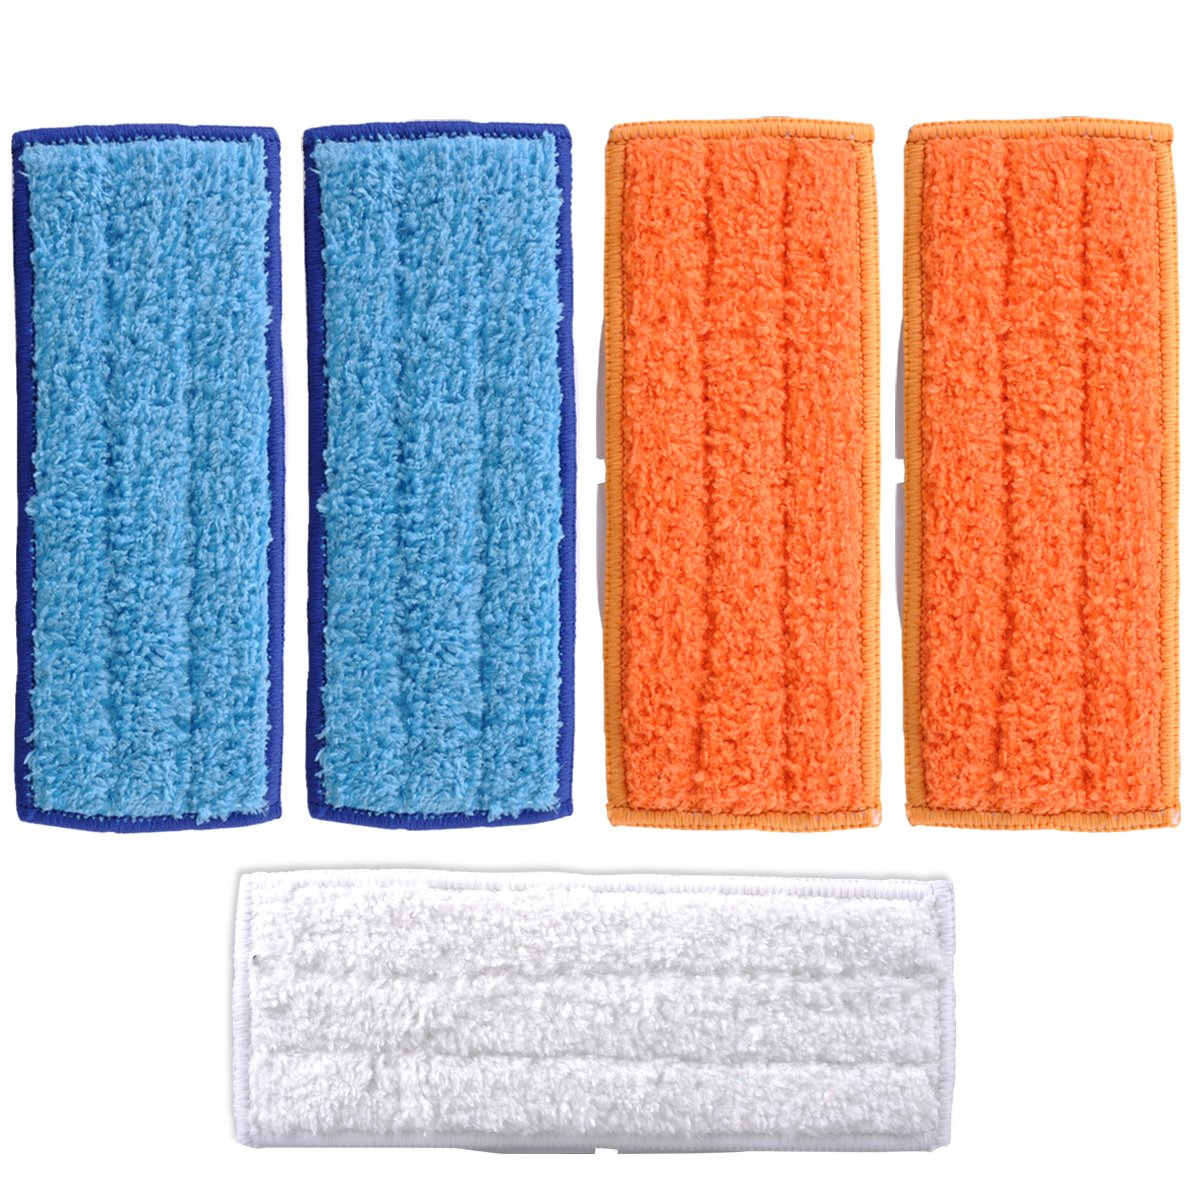 KEEPOW 5 Packs Washable Mopping Pads for iRobot Braava Jet 240 241 by KEEPOW